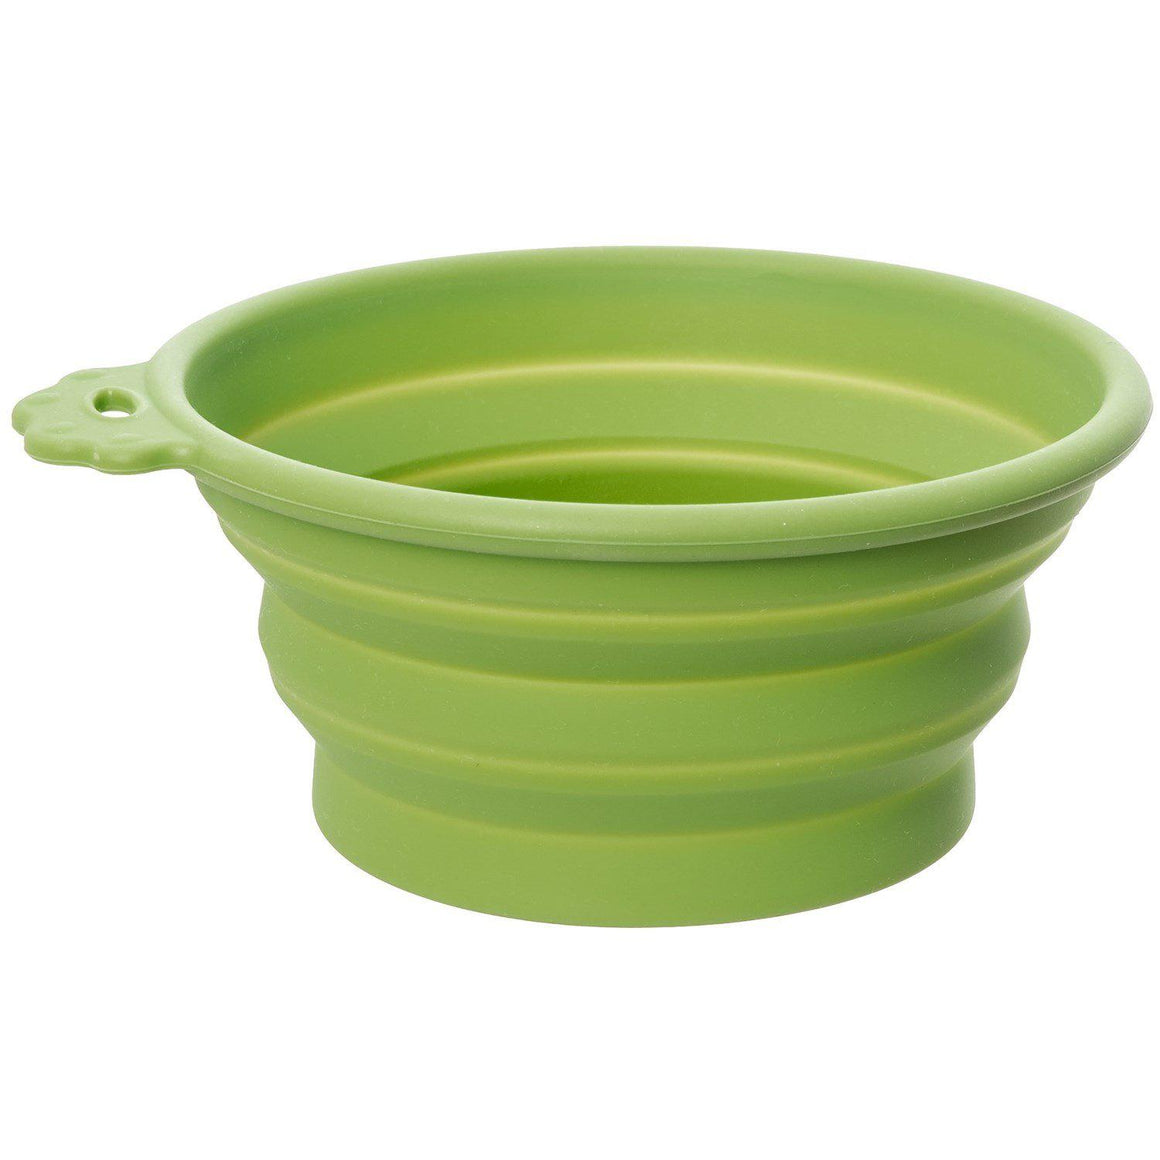 Guardian Gear Bend-a-Bowl Collapsible Bowls for Dogs and Cats, select-Le Pup Pet Supplies and Grooming